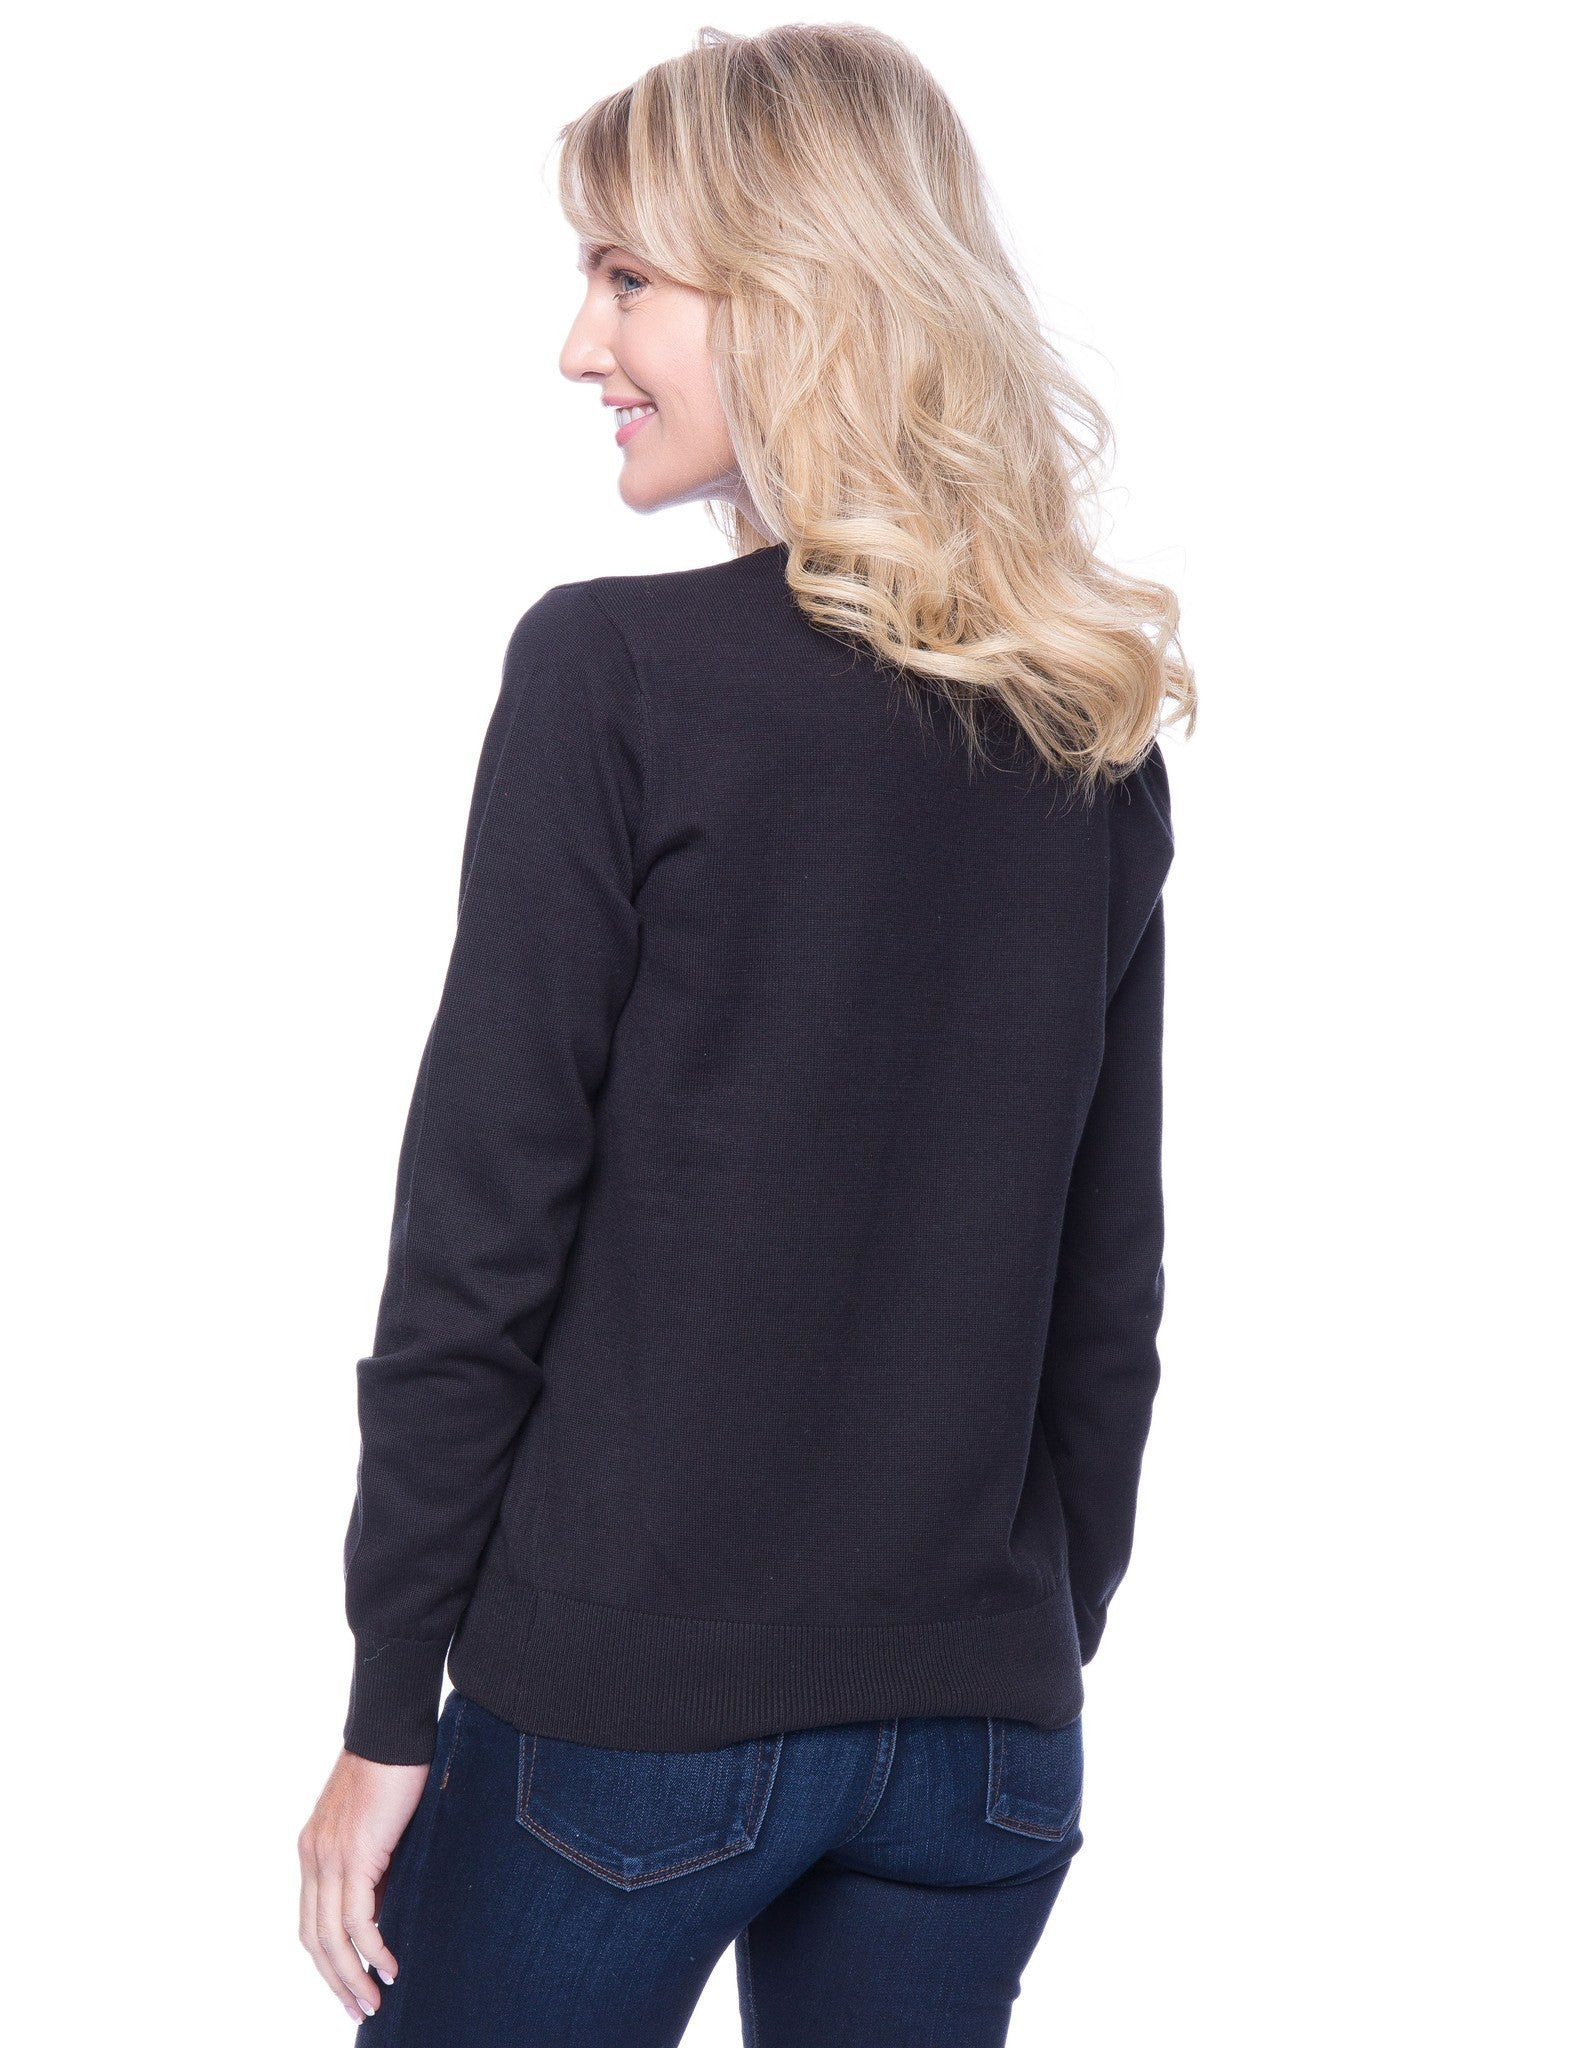 Tocco Reale Women's Premium Cotton Crew Neck Sweater - Black